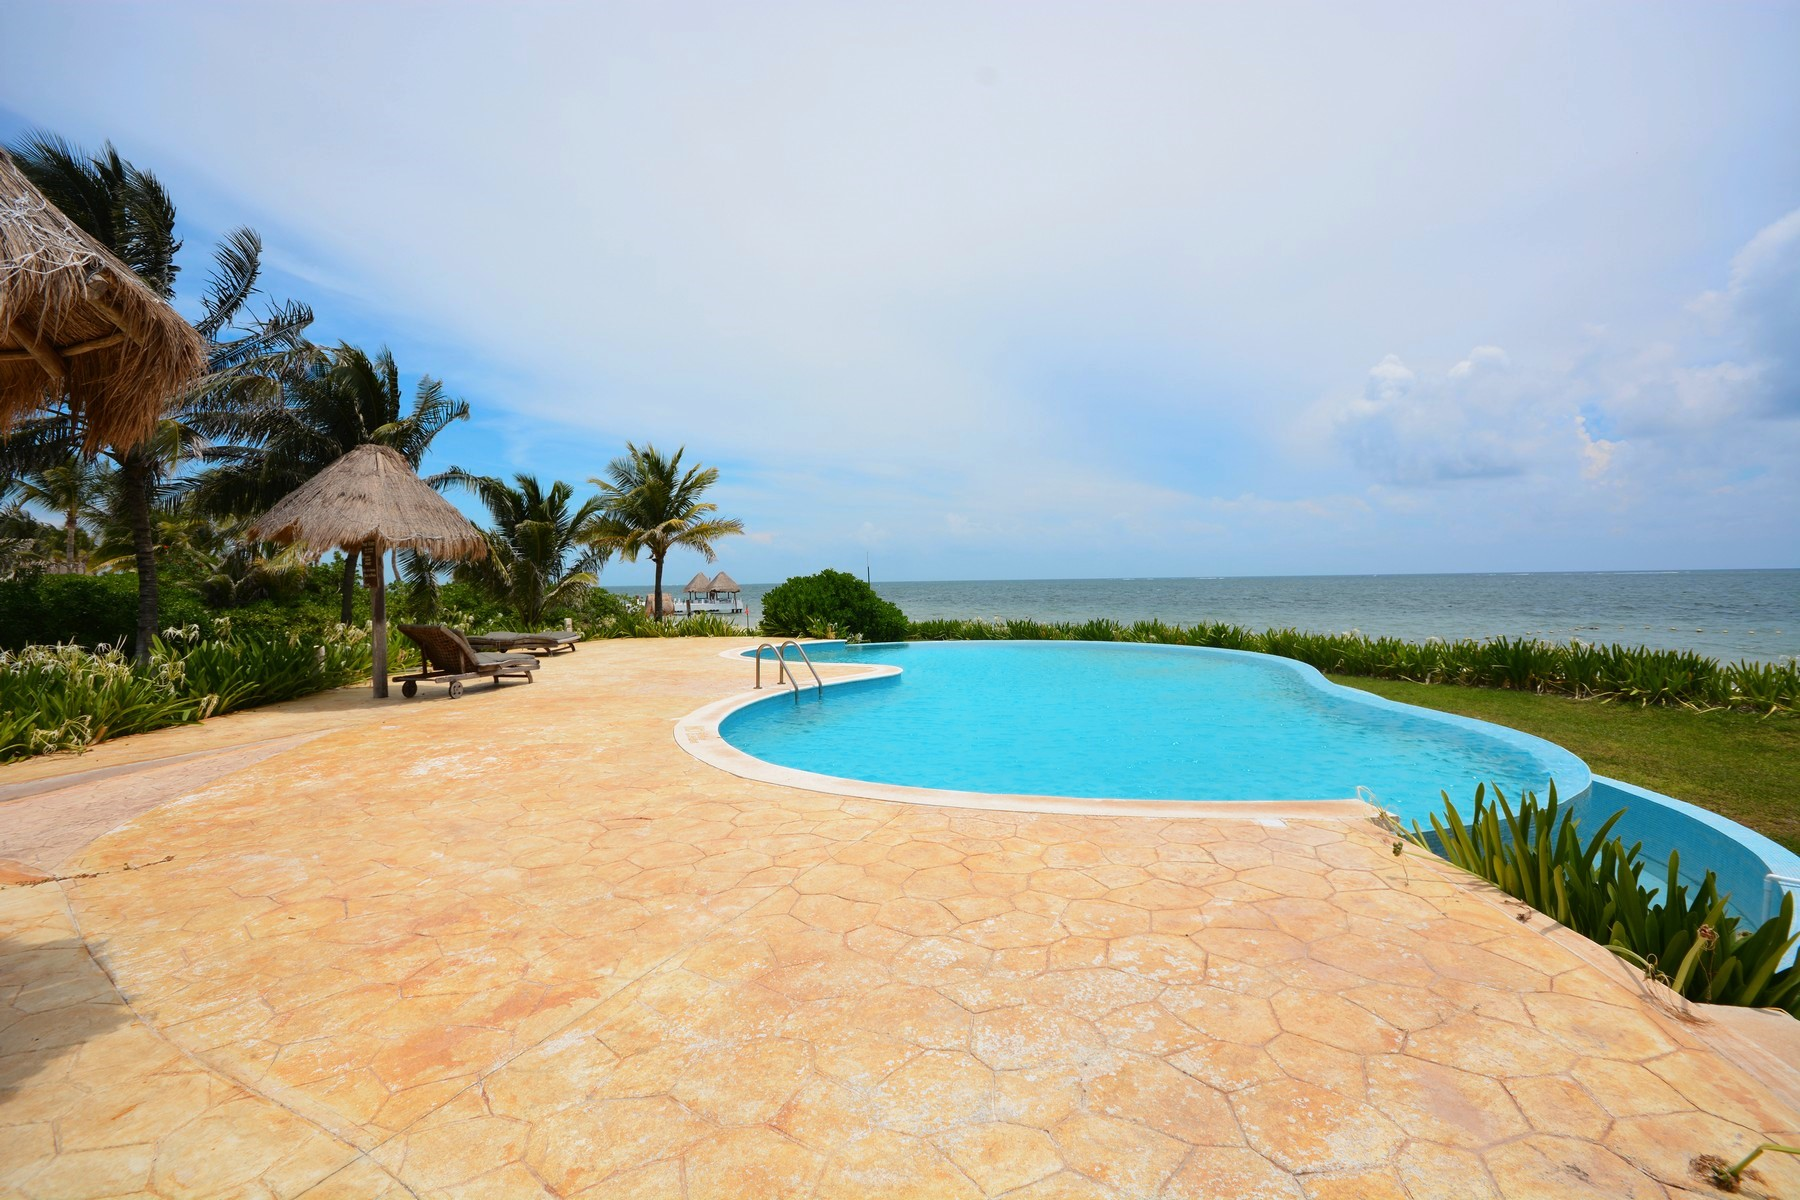 Single Family Home for Sale at SOL VILLAGE Villa Del Sol SM-11 MZ-05 L-1 Puerto Morelos, 77580 Mexico